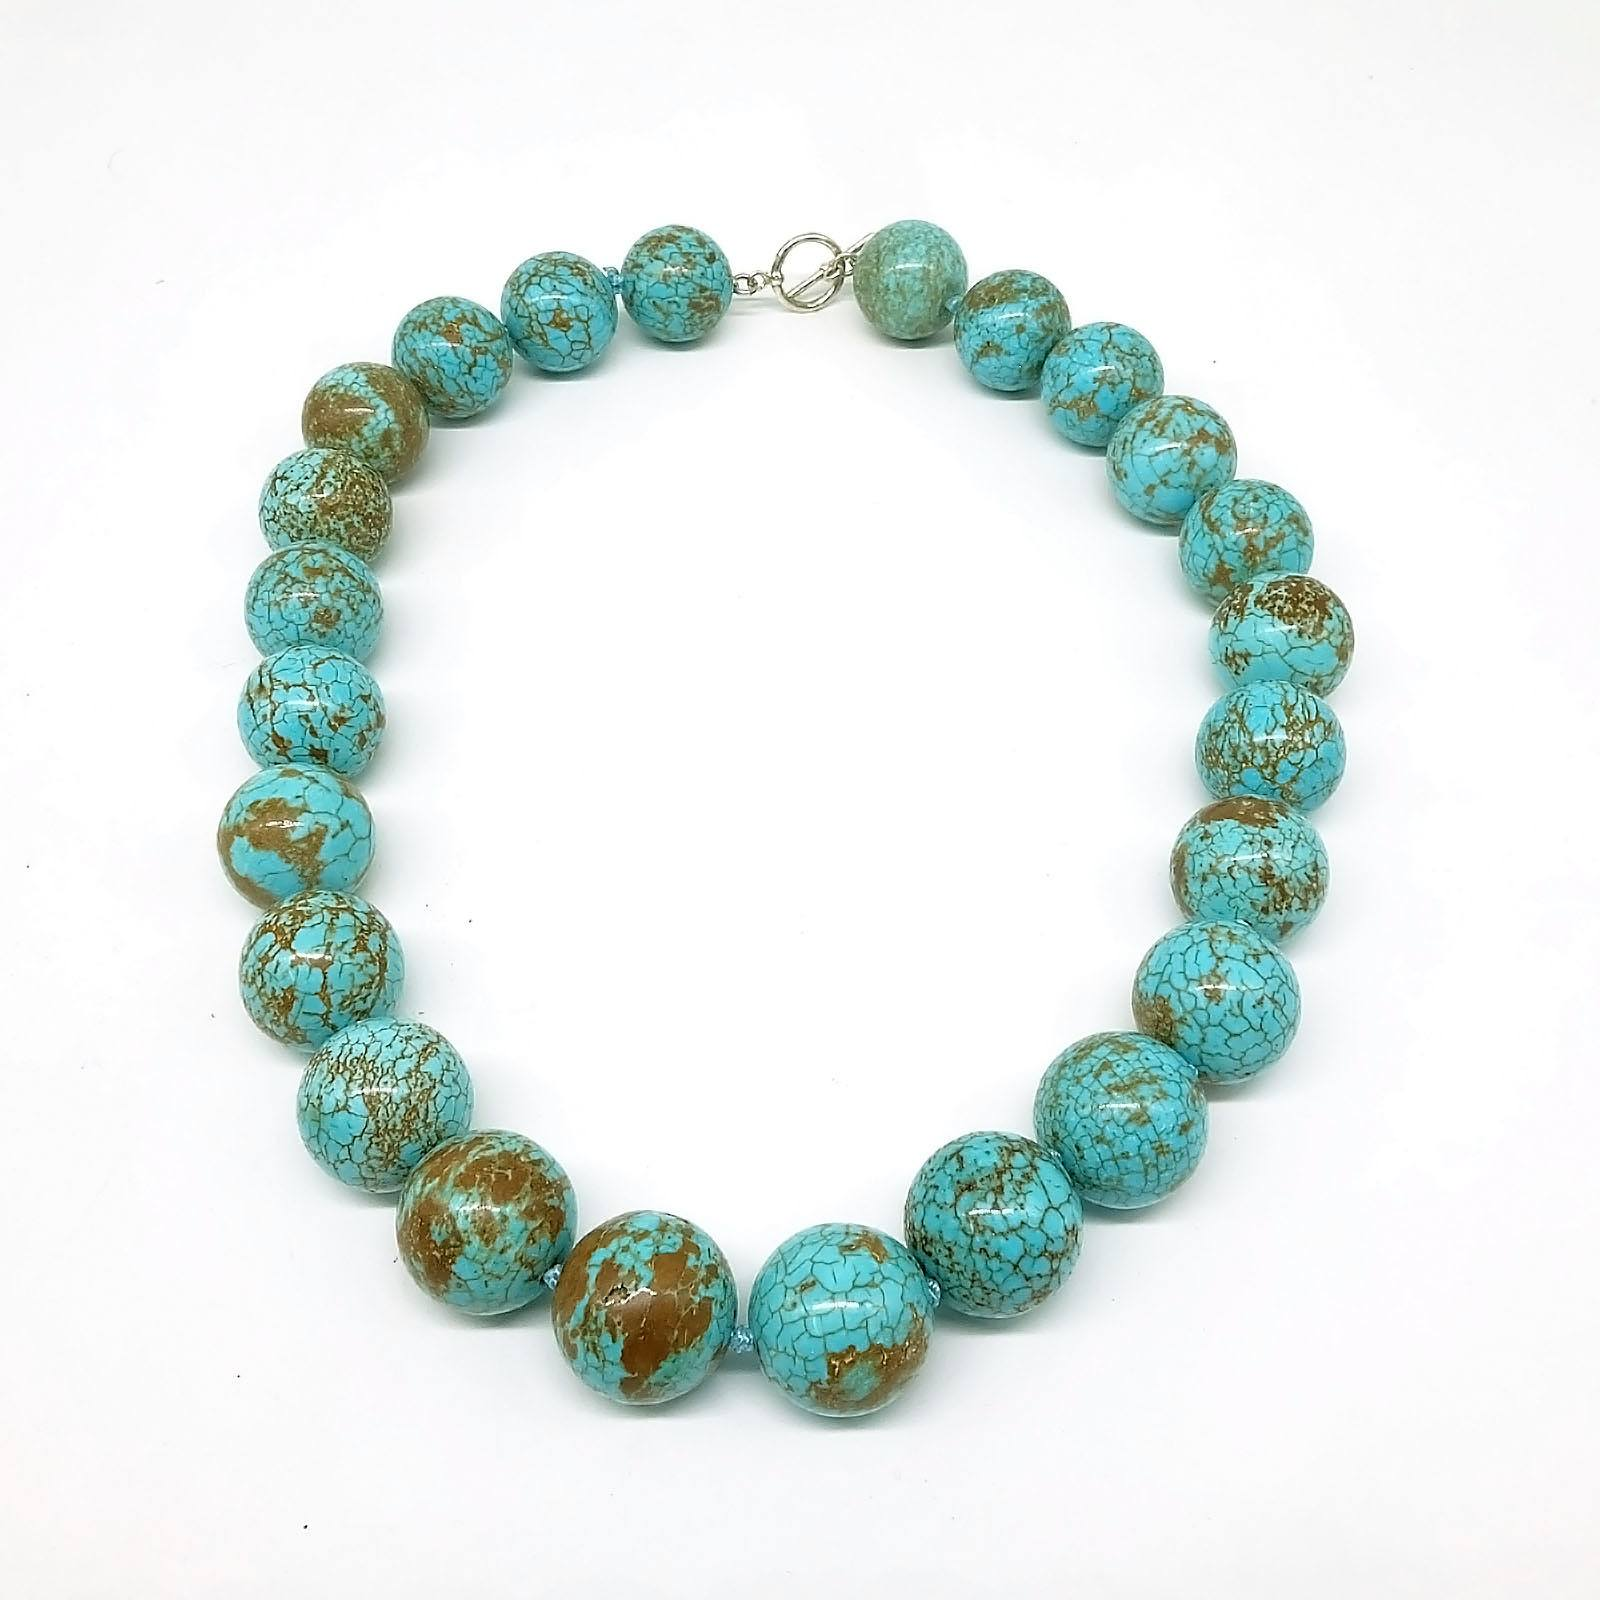 'Turquoise Necklace 19.5mm Round Green Blue Beads '